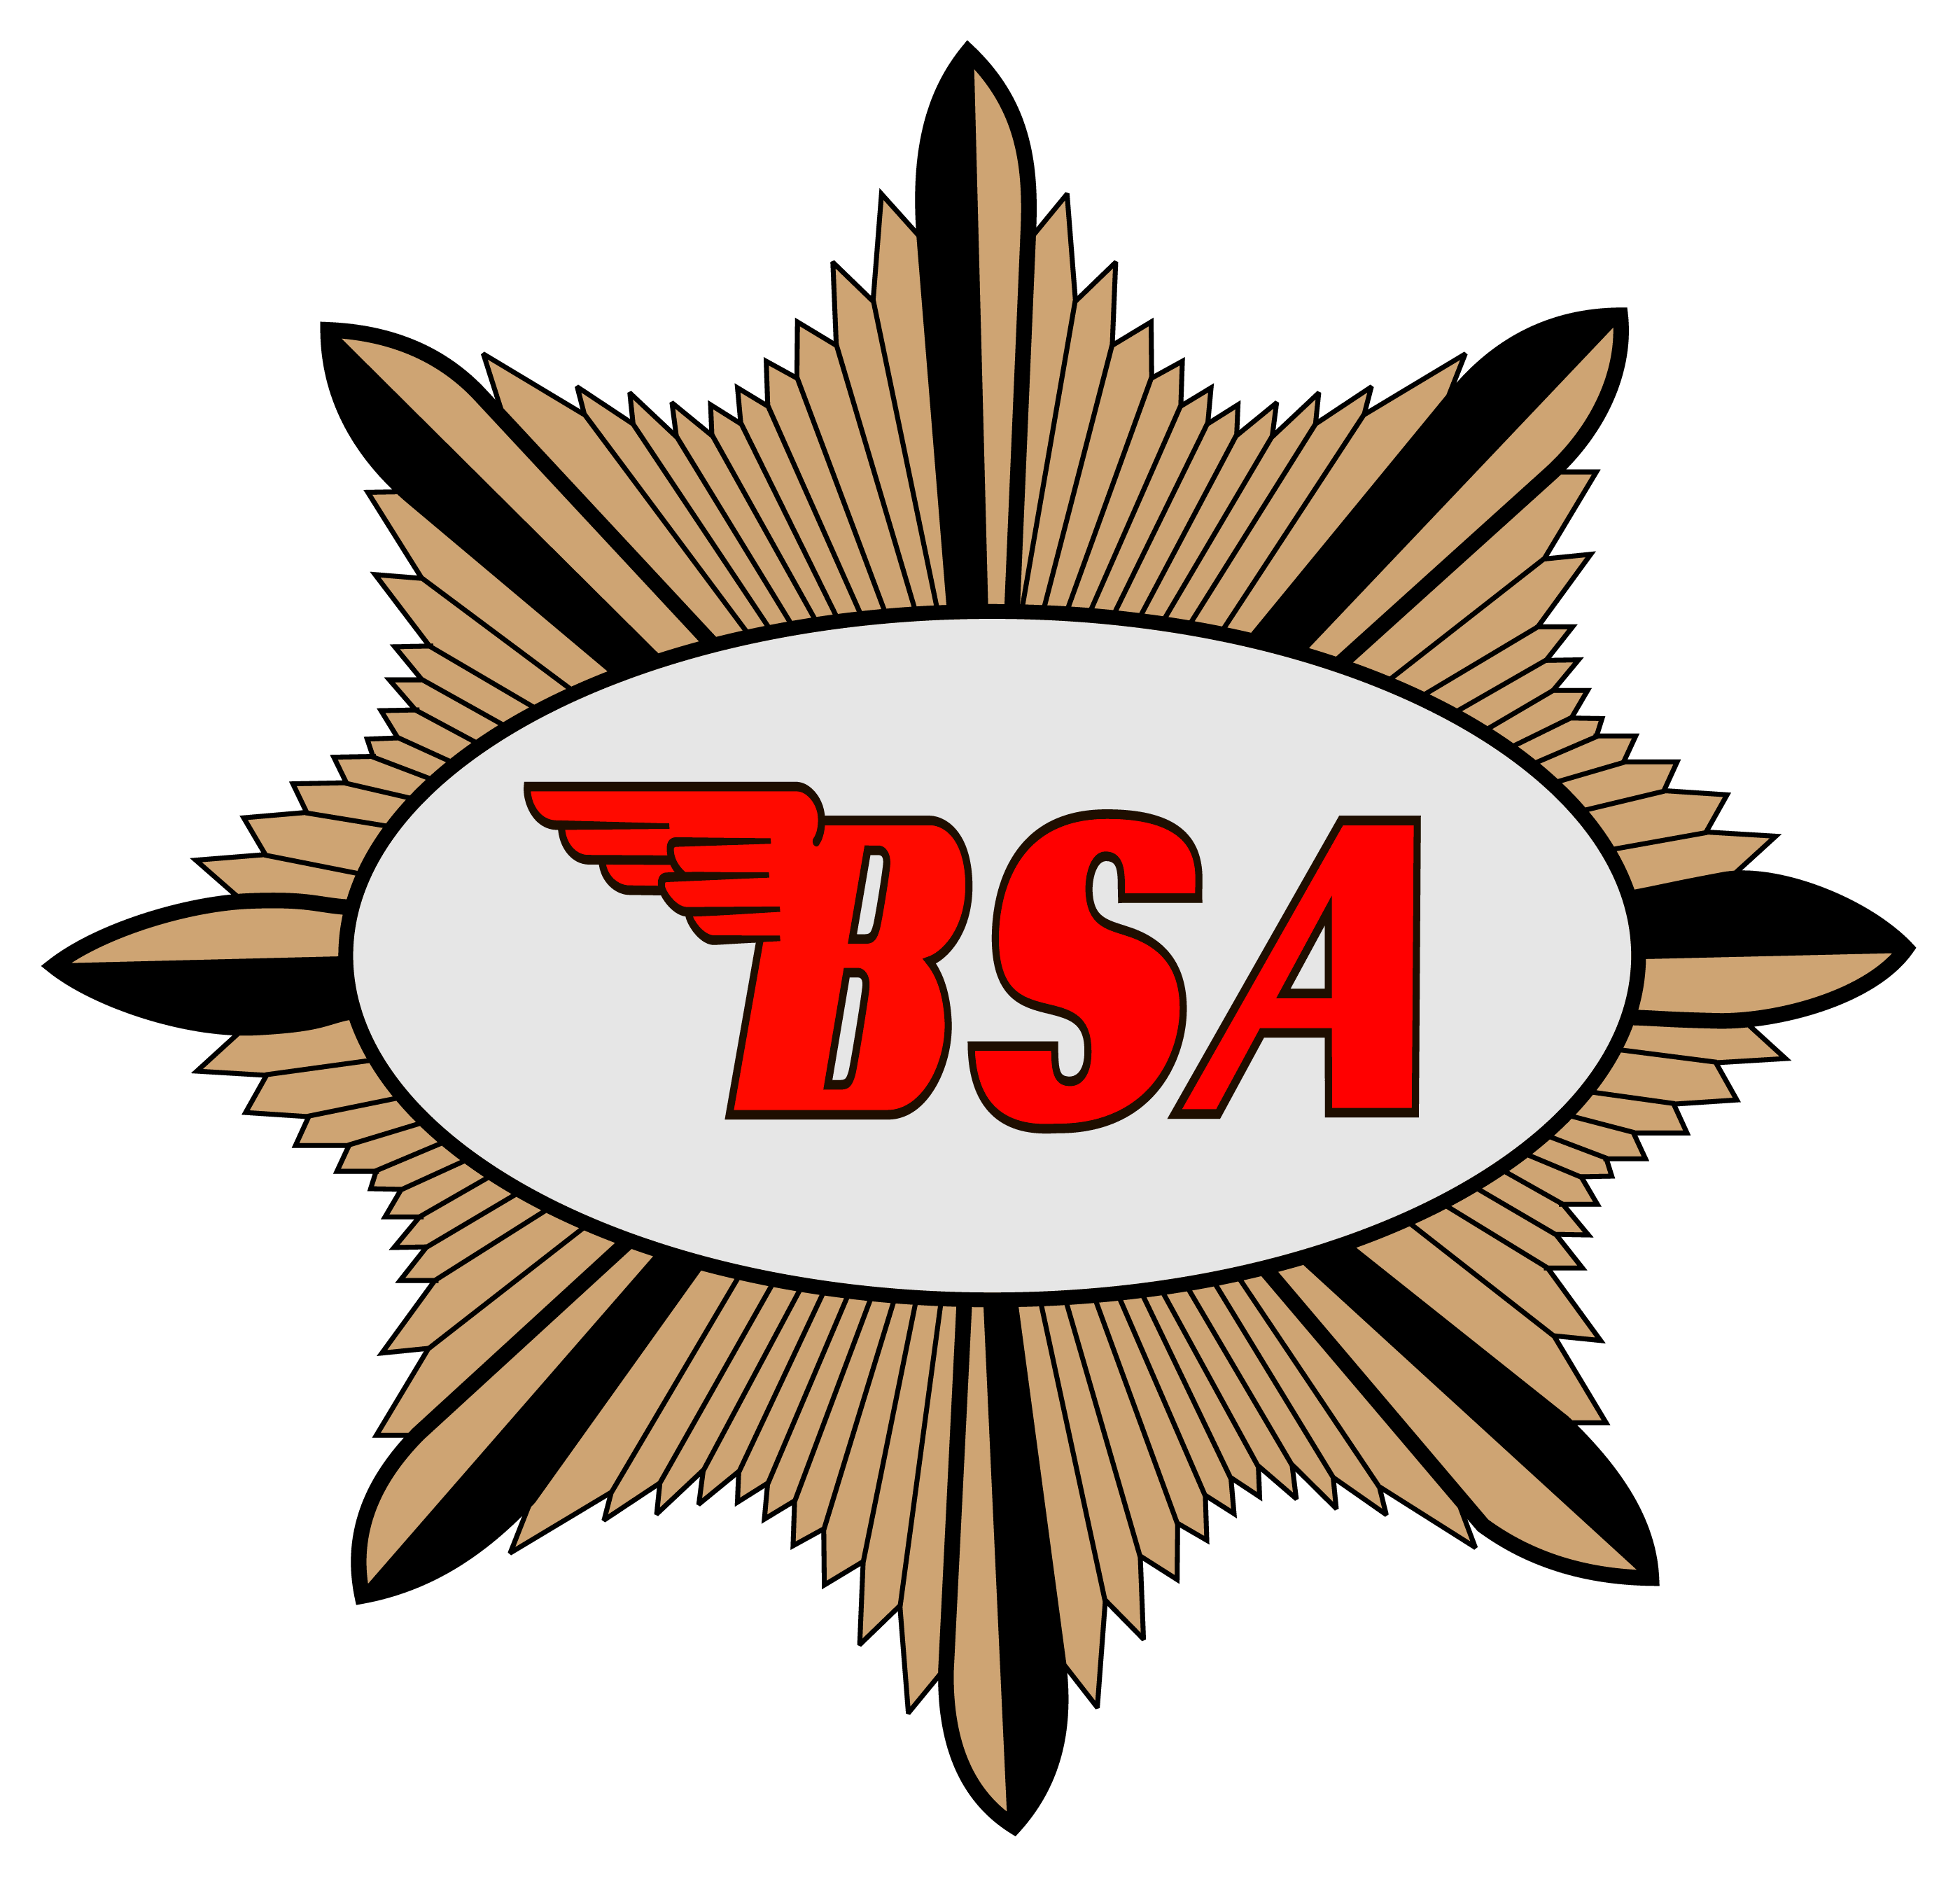 bsa logo motorcycle brands png #3964